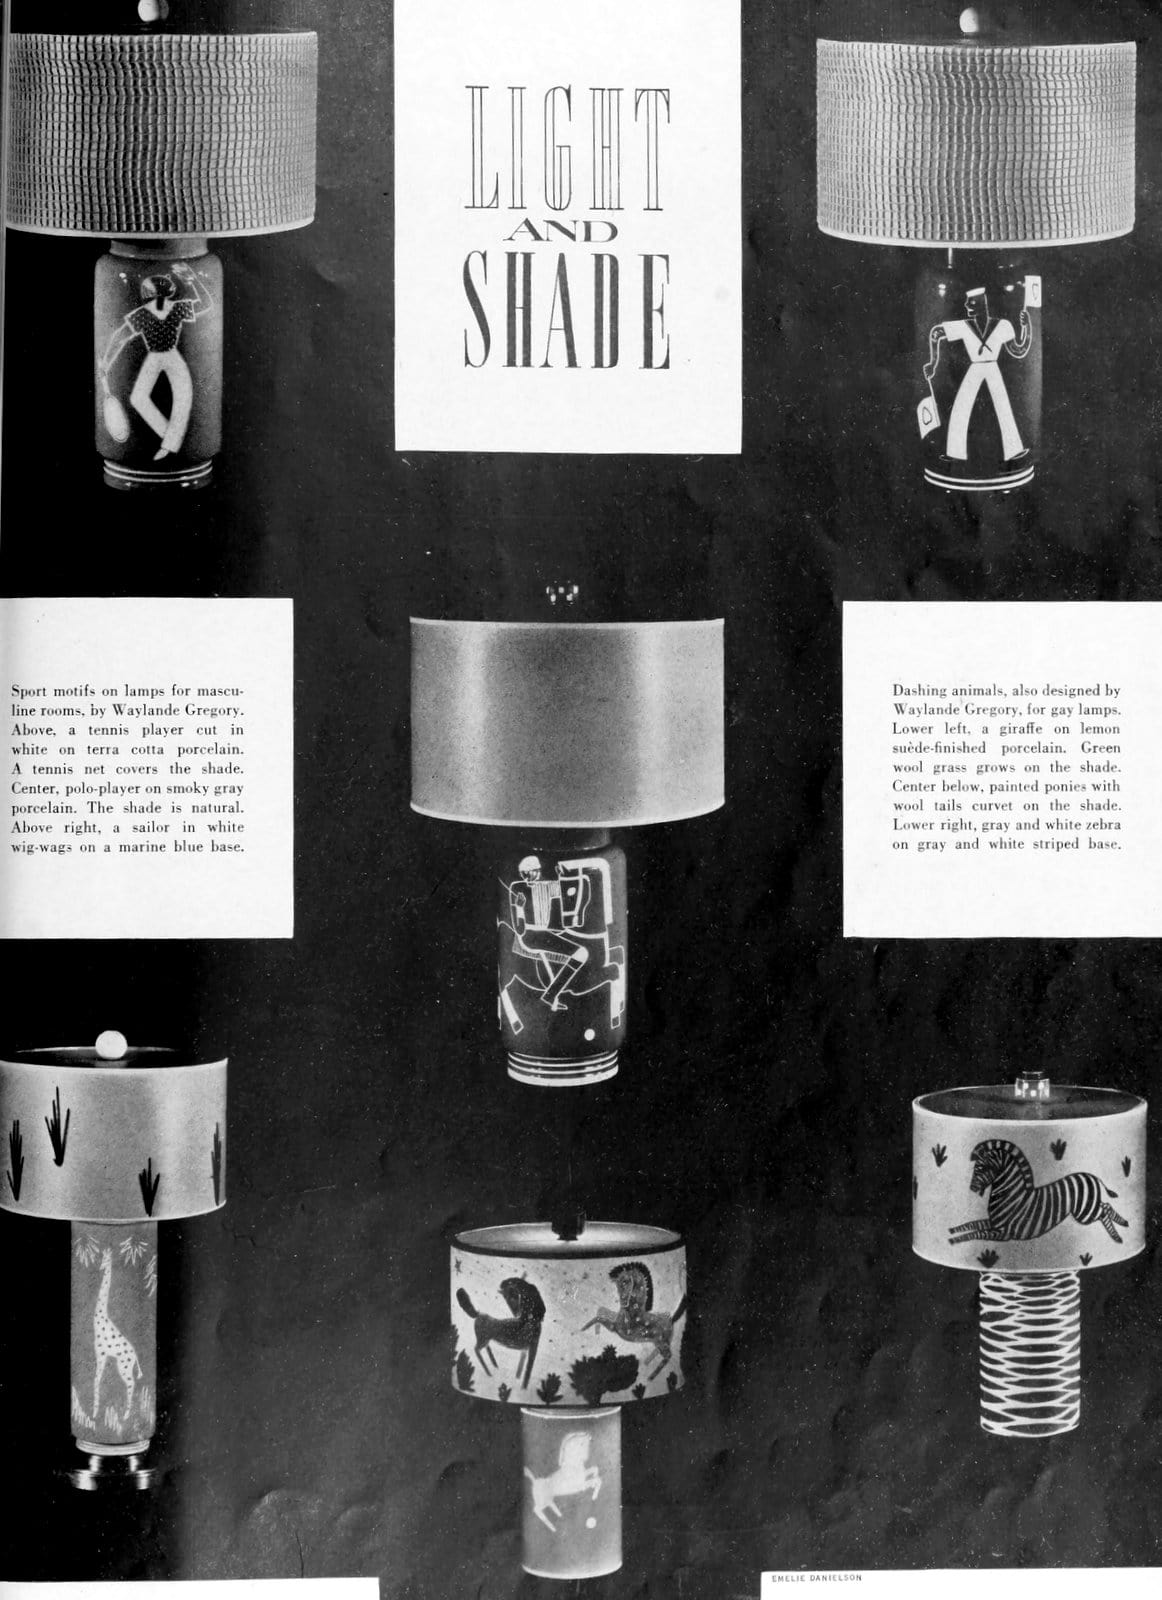 Antique artistic masculine lamp styles (1936)